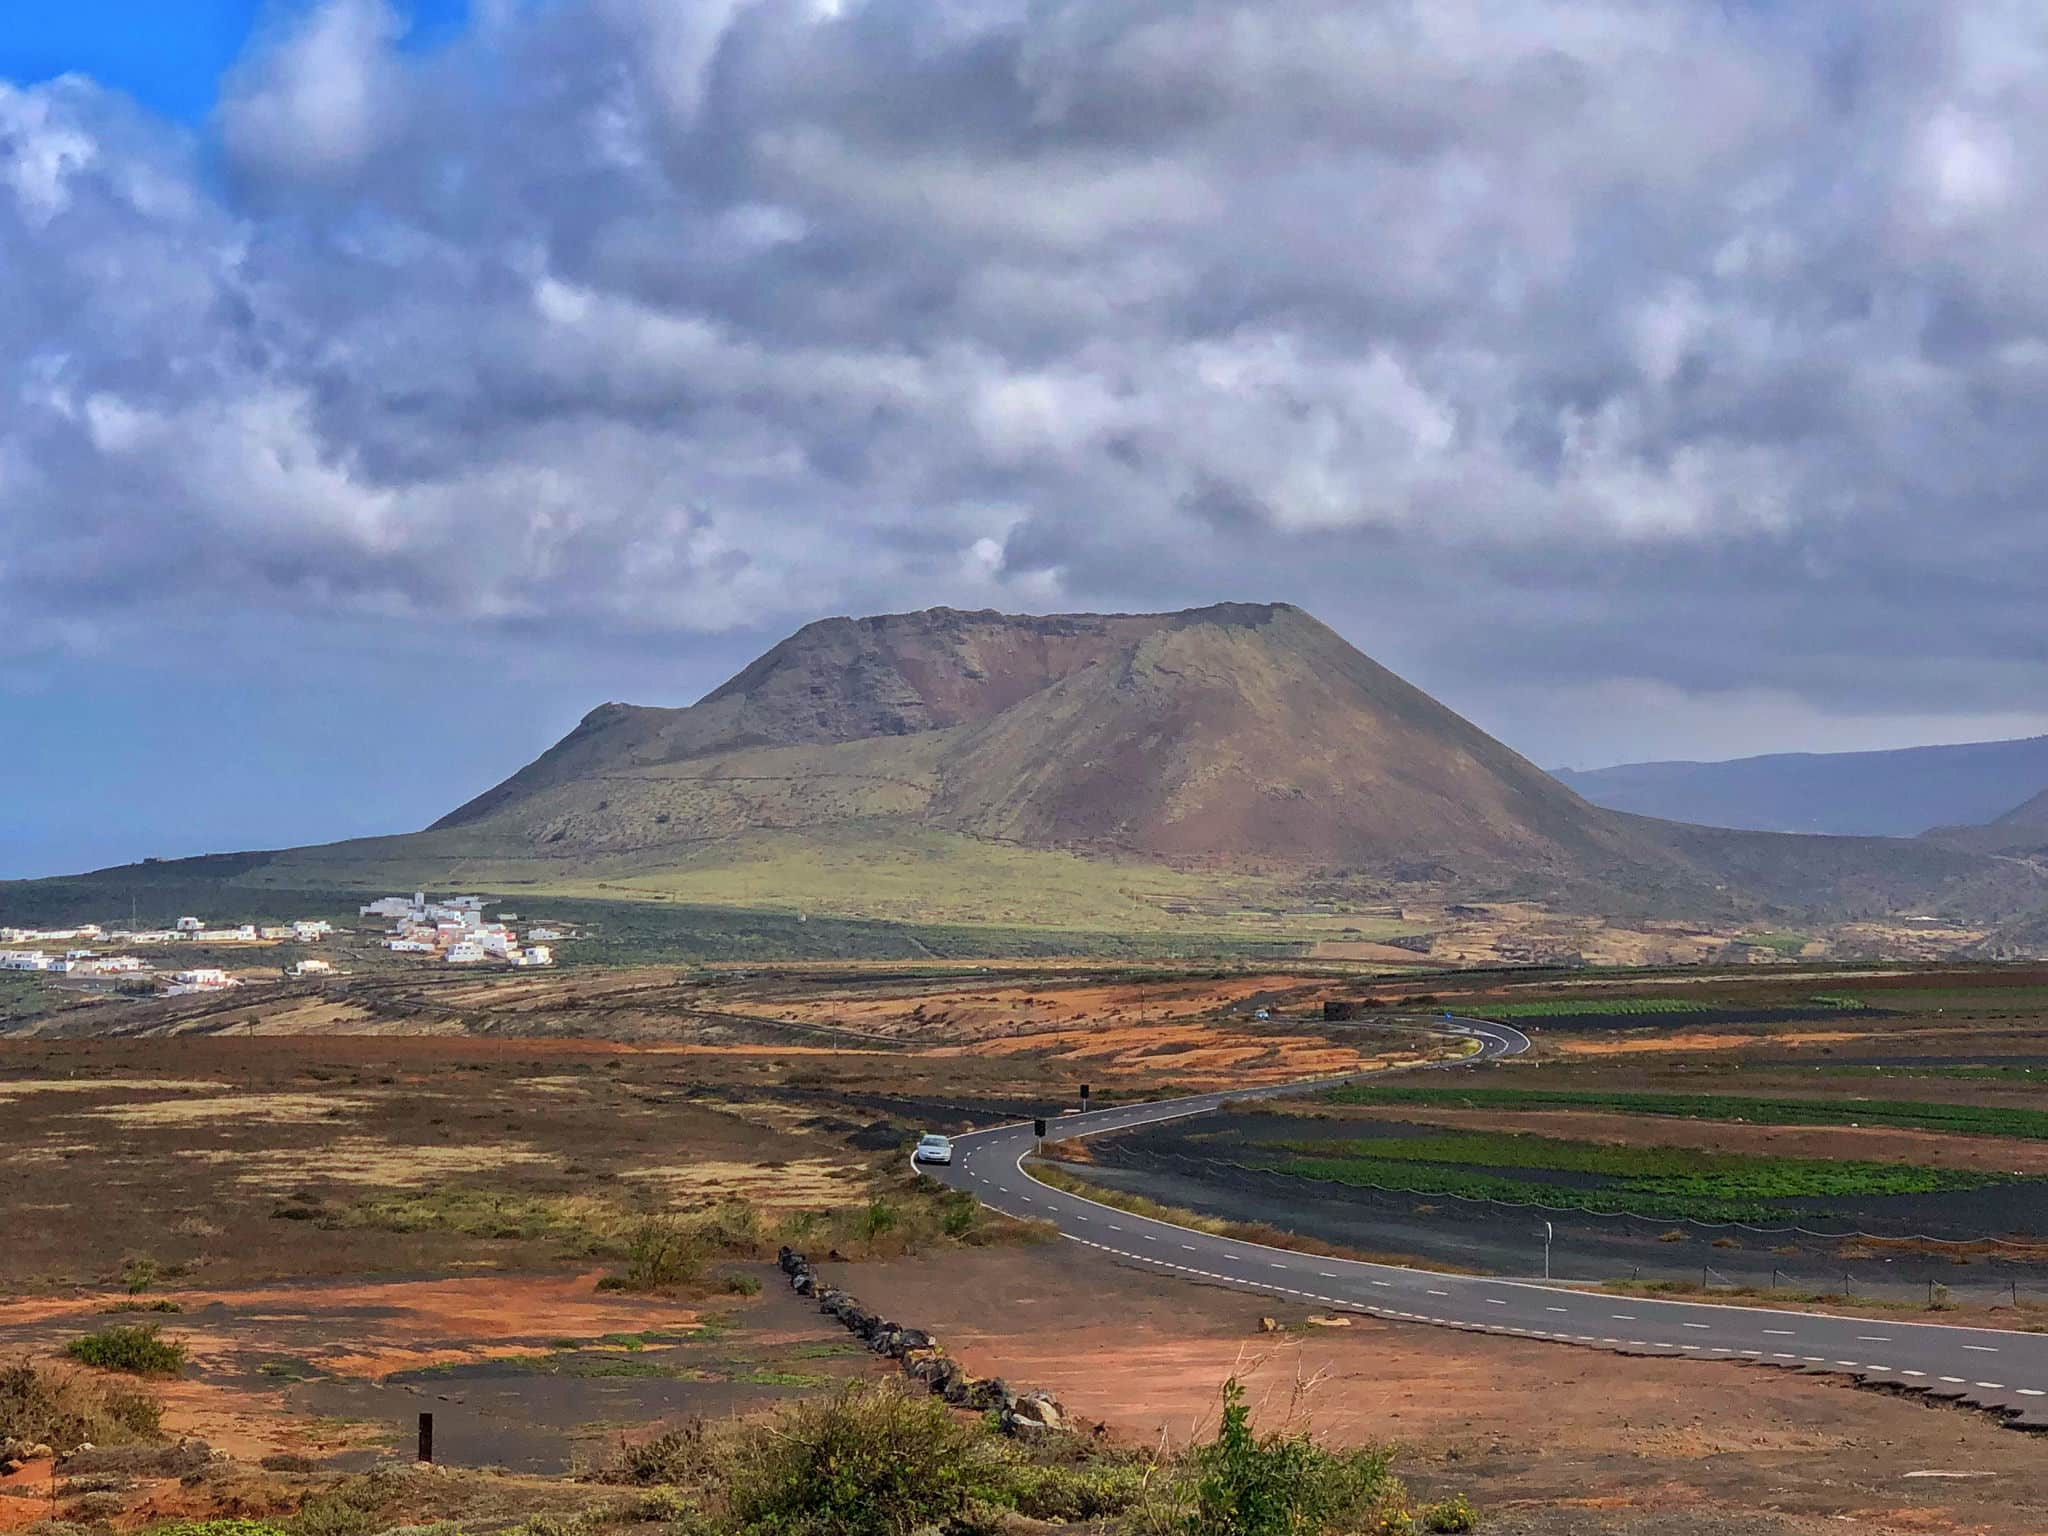 volcanic mountains in lanzarote